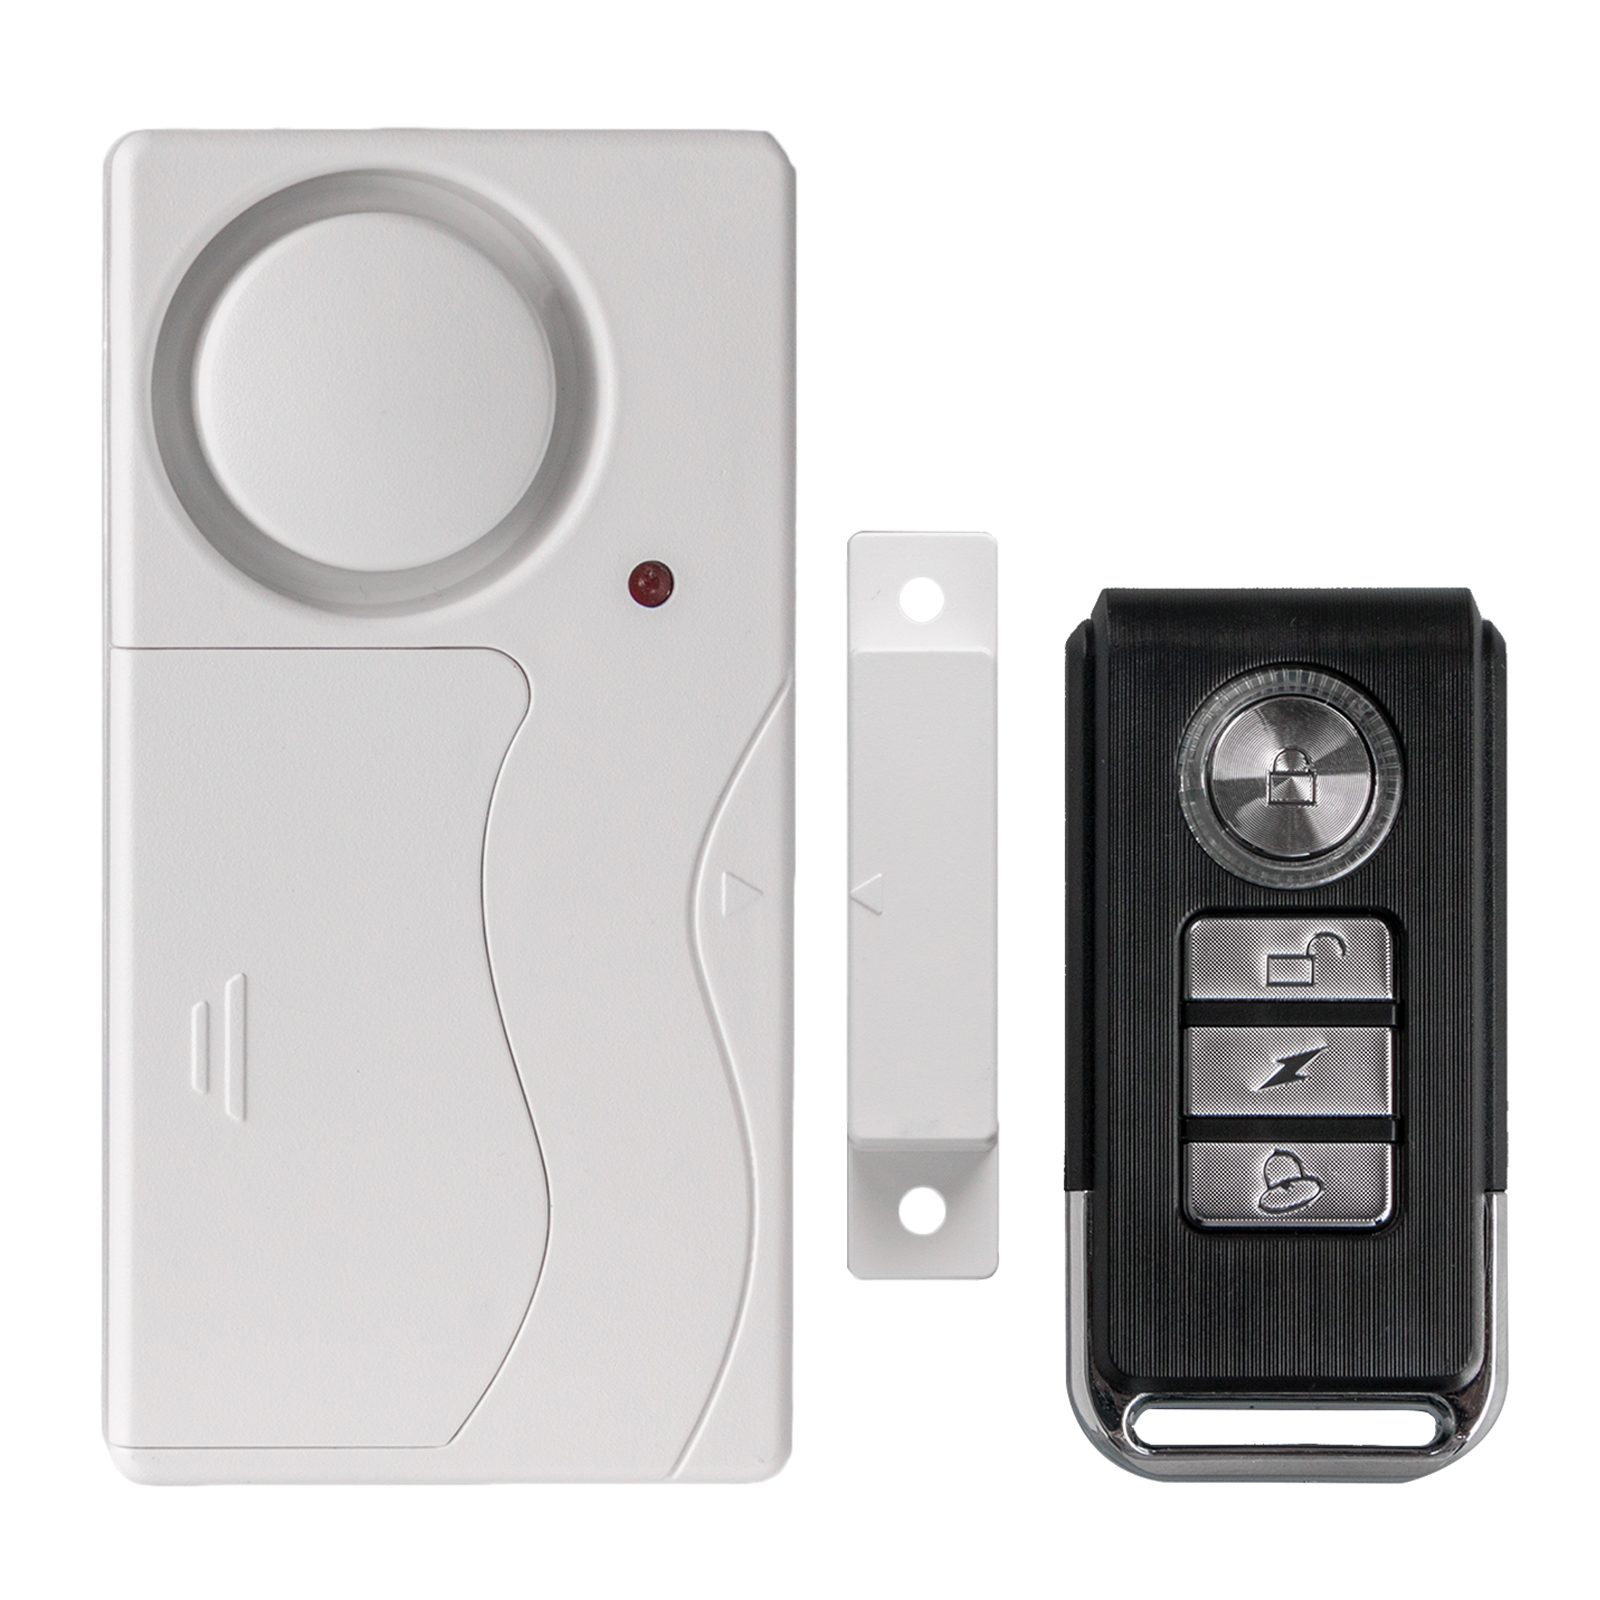 TSV Wireless Anti-Theft Monitor Remote Control Door and Window Security Alarms Magnetic Sensor Home Door Entry